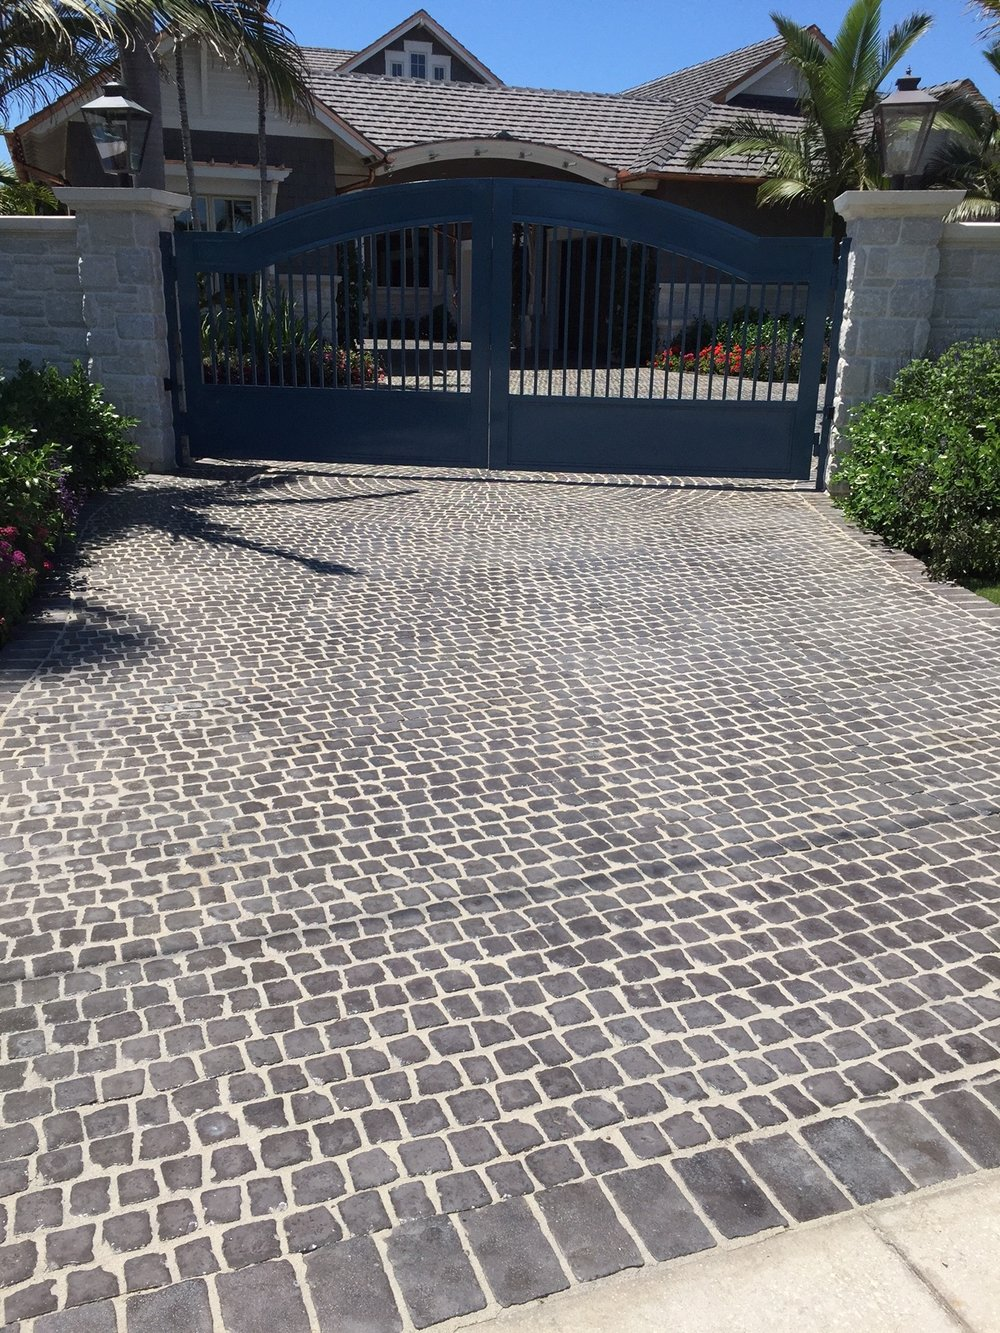 Cobblesystems riccobene concrete masonry design img6805g solutioingenieria Image collections